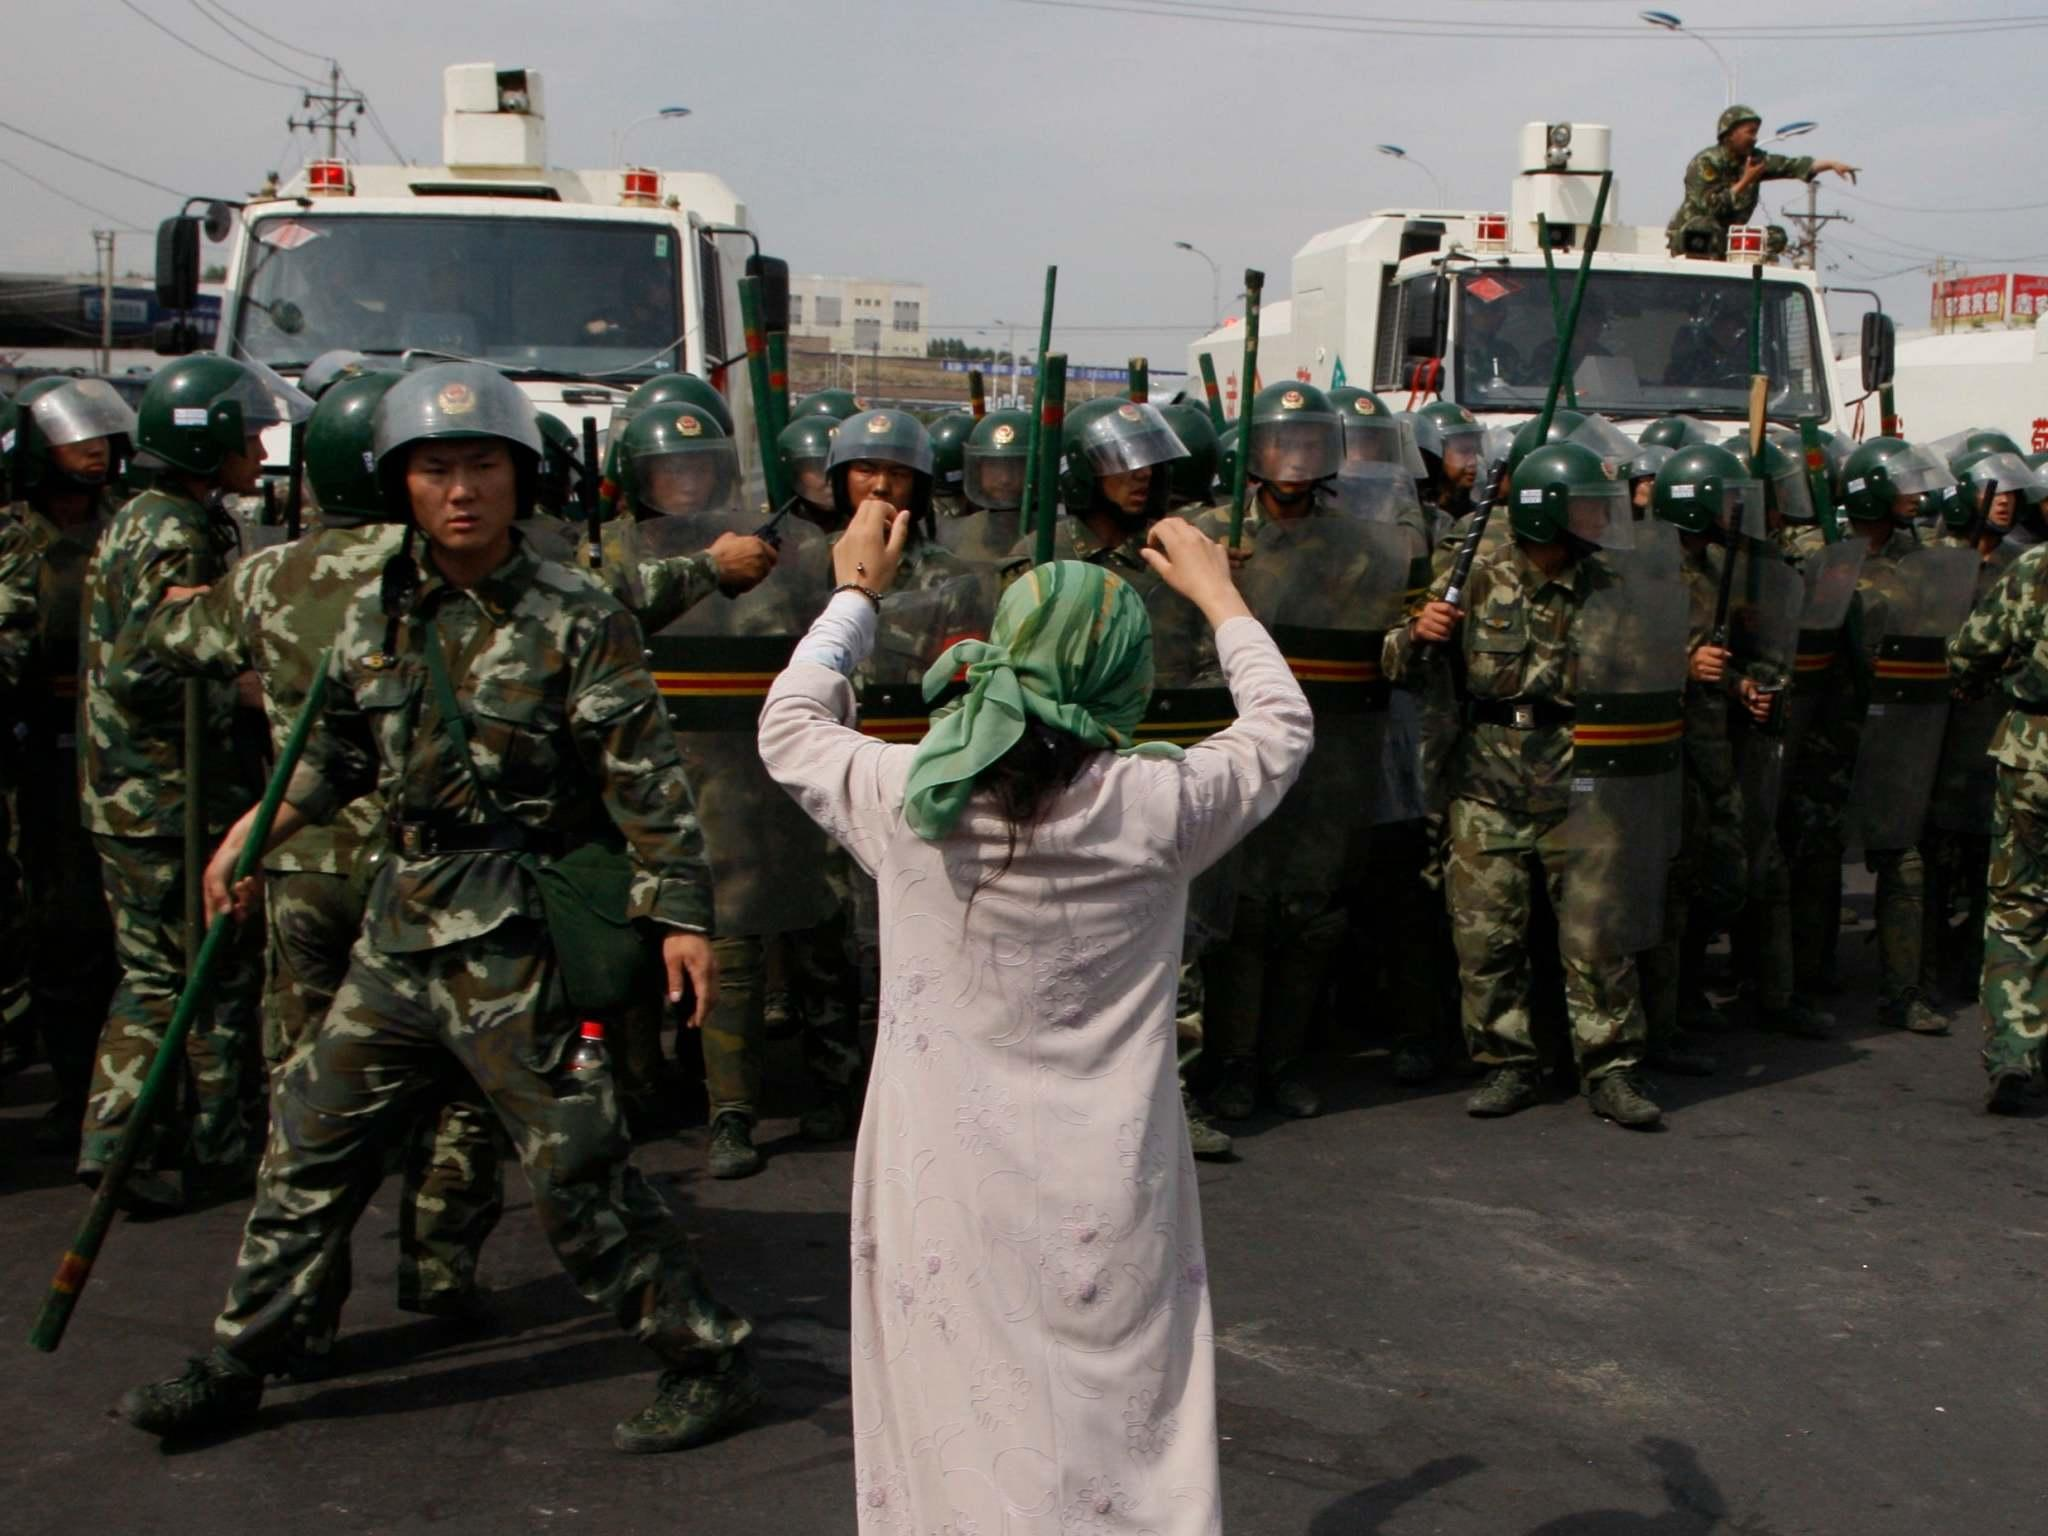 "China has been urged to stop its mass detention of Uighur Muslims by 22 members of the United Nations Human Rights Council in the first such joint move on the issue.The UN says at least one million Uighurs and other Muslims have been detained by China in the western region of Xinjiang.In an unprecedented letter seen by Reuters, ambassadors from 22 countries voiced their concerns about reports of unlawful detention in ""large-scale places of detention, as well as widespread surveillance and restrictions, particularly targeting Uighurs and other minorities in Xinjiang"".Britain, France and Germany were among the European nations to join the call, along with Australia, Canada and Japan, but not the United States, which quit the council a year ago.However, the letter fell short of activists demands for a formal statement to be read out at the council, or a resolution submitted for a vote.The letter to the forum's president, dated 8 July, cited China's obligations as a member of the 47-state forum to maintain the highest standards.""We call on China to uphold its national laws and international obligations and to respect human rights and fundamental freedoms, including freedom of religion or belief in Xinjiang and across China,"" the letter said.""We call also on China to refrain from the arbitrary detention and restrictions on freedom of movement of Uighurs, and other Muslim and minority communities in Xinjiang.""It urged China to allow international independent experts, including Michelle Bachelet, the UN high commissioner for human rights, ""meaningful access"" to Xinjiang.Ms Bachelet, a former president of Chile, has lobbied China to grant the UN access to investigate reports of disappearances and arbitrary detentions of Muslims in Xinjiang.Last month, China's ambassador to the UN in Geneva said he hoped Ms Bechelet would take up an invitation to visit.One diplomat told Reuters China's delegation was ""hopping mad"" at the move and was preparing its own letter in response.In a statement, Human Rights Watch welcomed the letter as ""important not only for Xinjiang's population, but for people around the world who depend on the UN's leading rights body to hold even the most powerful countries to account.""At the start of the three-week session, which ends on Friday, the vice-governor of Xinjiang responded to international condemnation of the state-run detention camps by saying they were vocational centres which had helped ""save"" people from extremist influences.Last week, a study said thousands of Muslim children in the region were being separated from their parents in what it called a ""systematic campaign of social re-engineering and cultural genocide""."